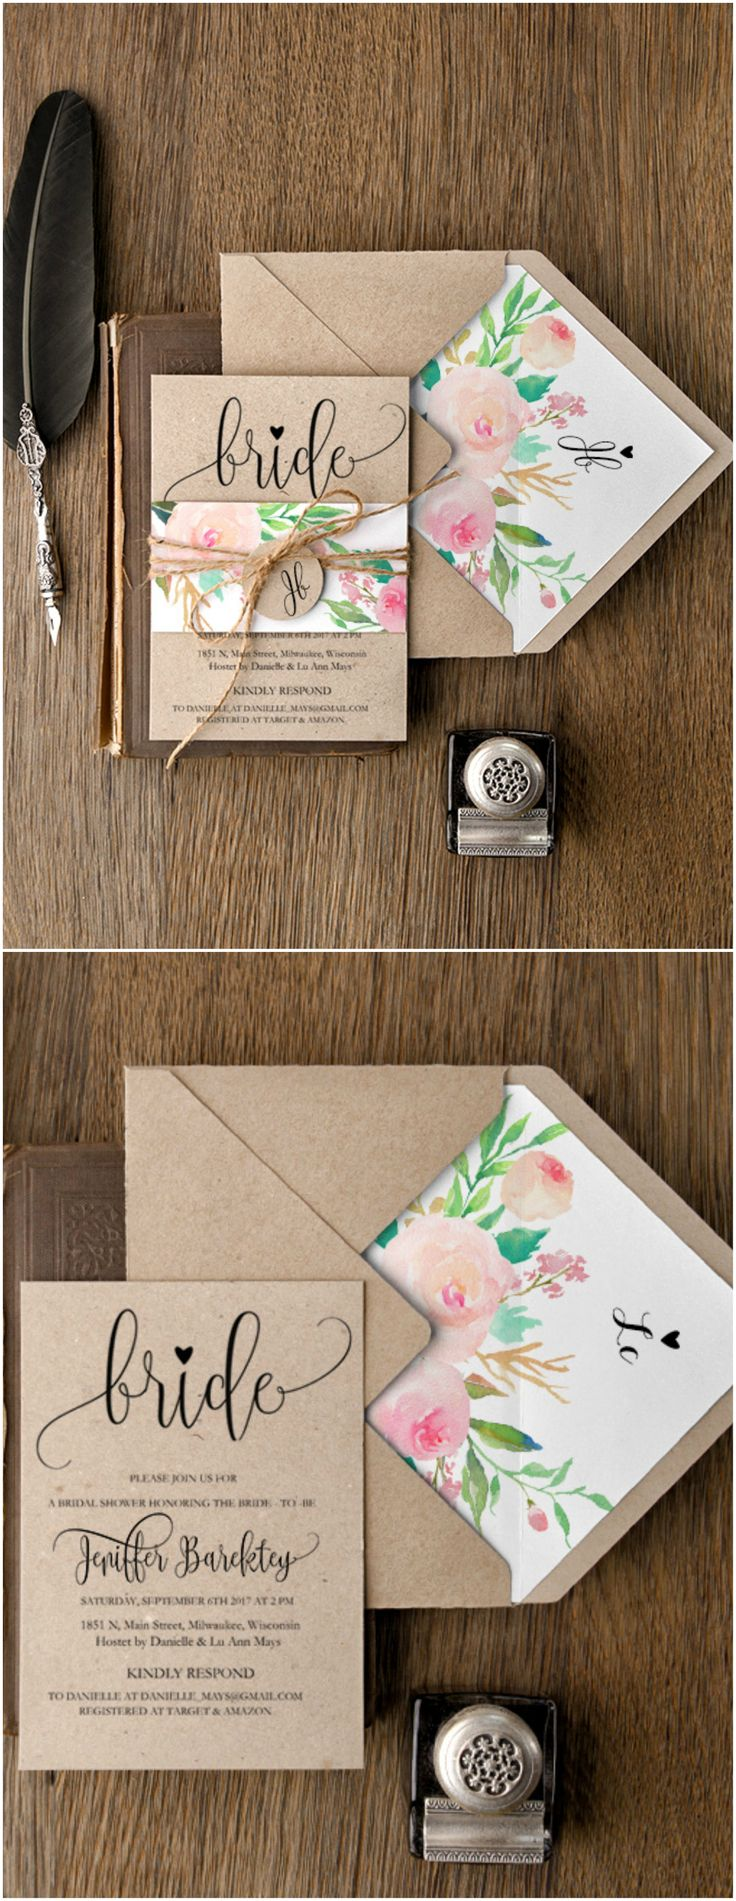 Floral Bridal Shower Invitations #weddingideas #bridetobe #bridalshower #floral…